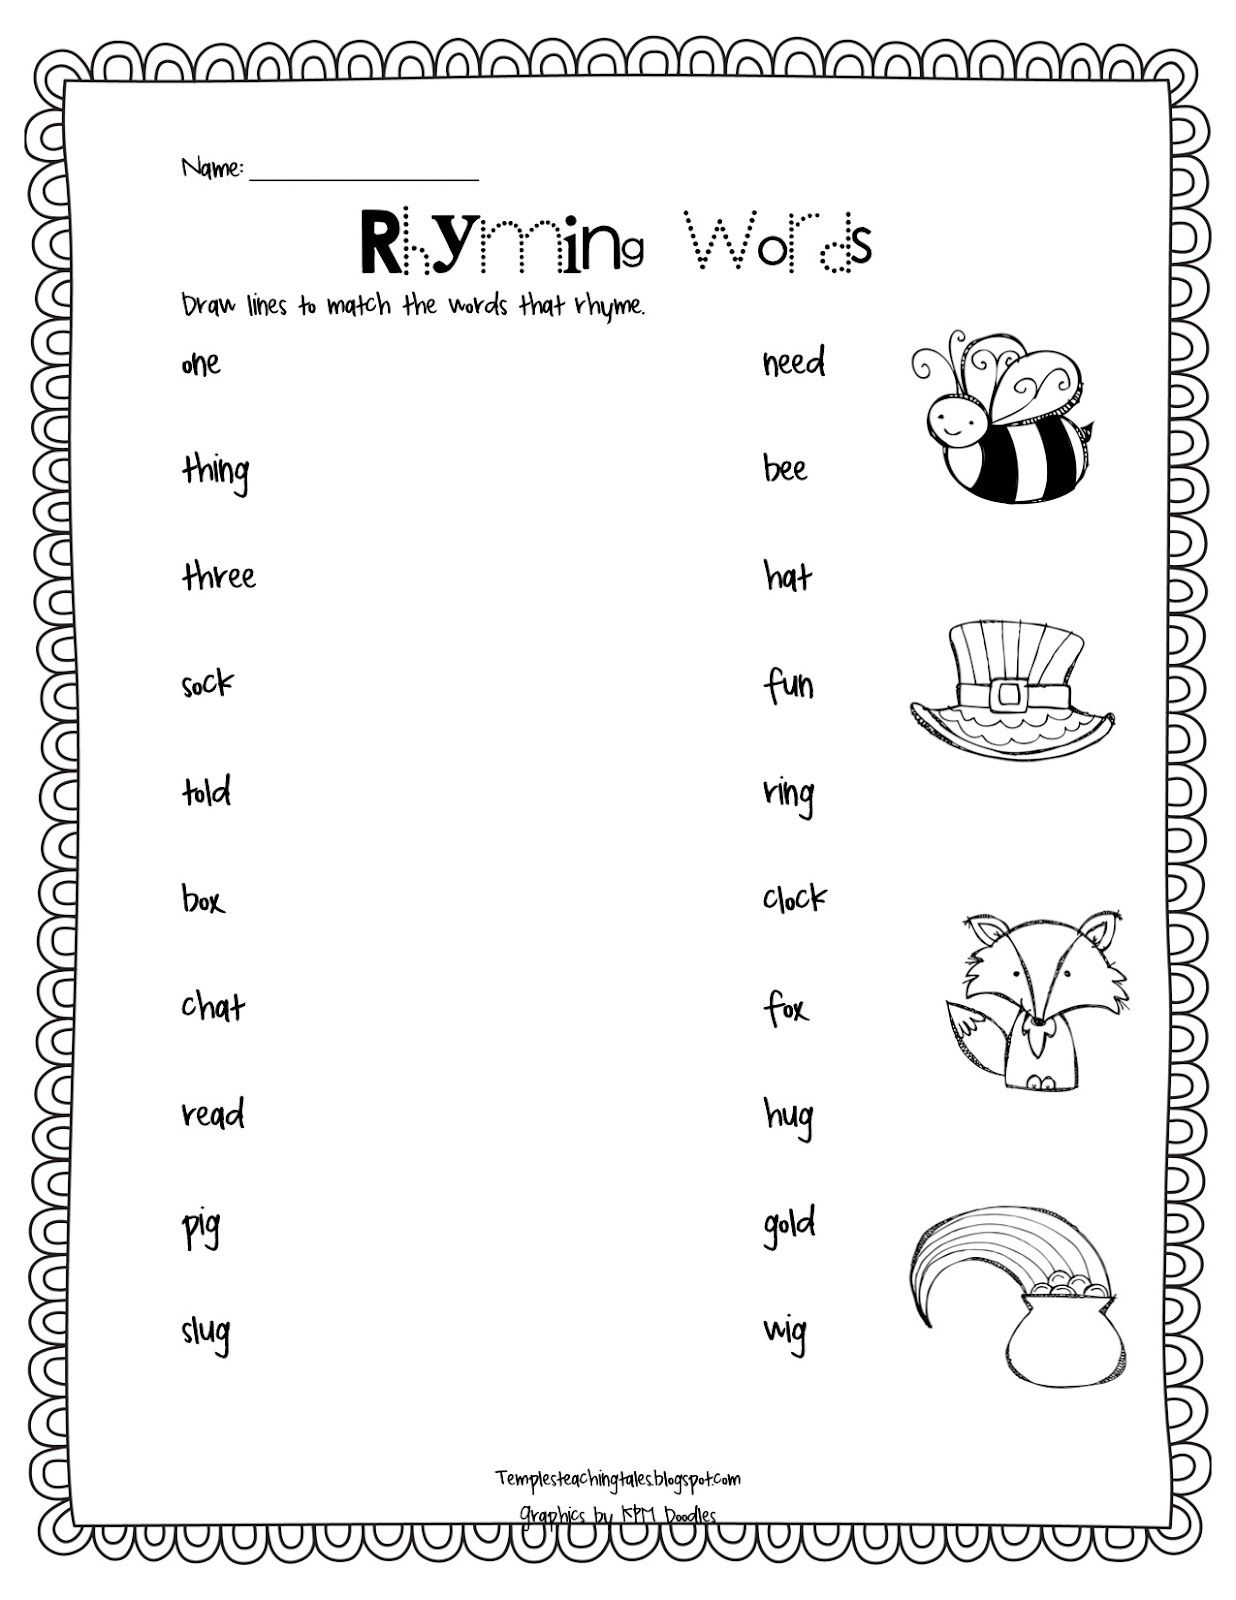 Free Printable Rhyming Worksheets For 1st Grade - Worksheets